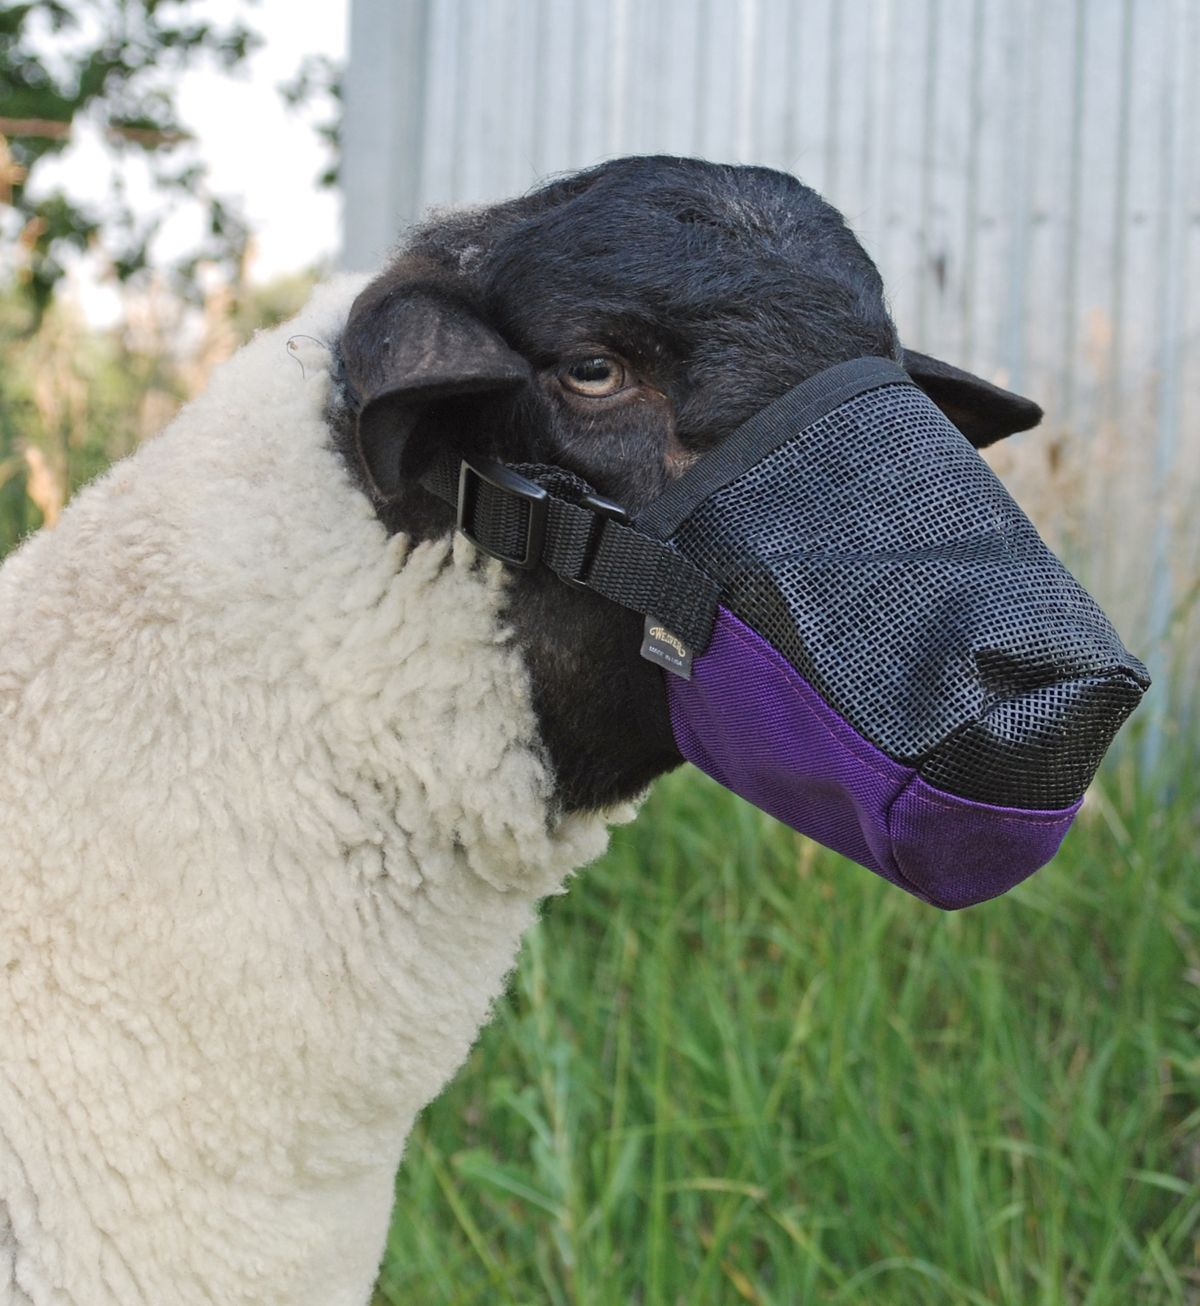 Pin by Valley Vet Supply on Goat & Sheep Goats